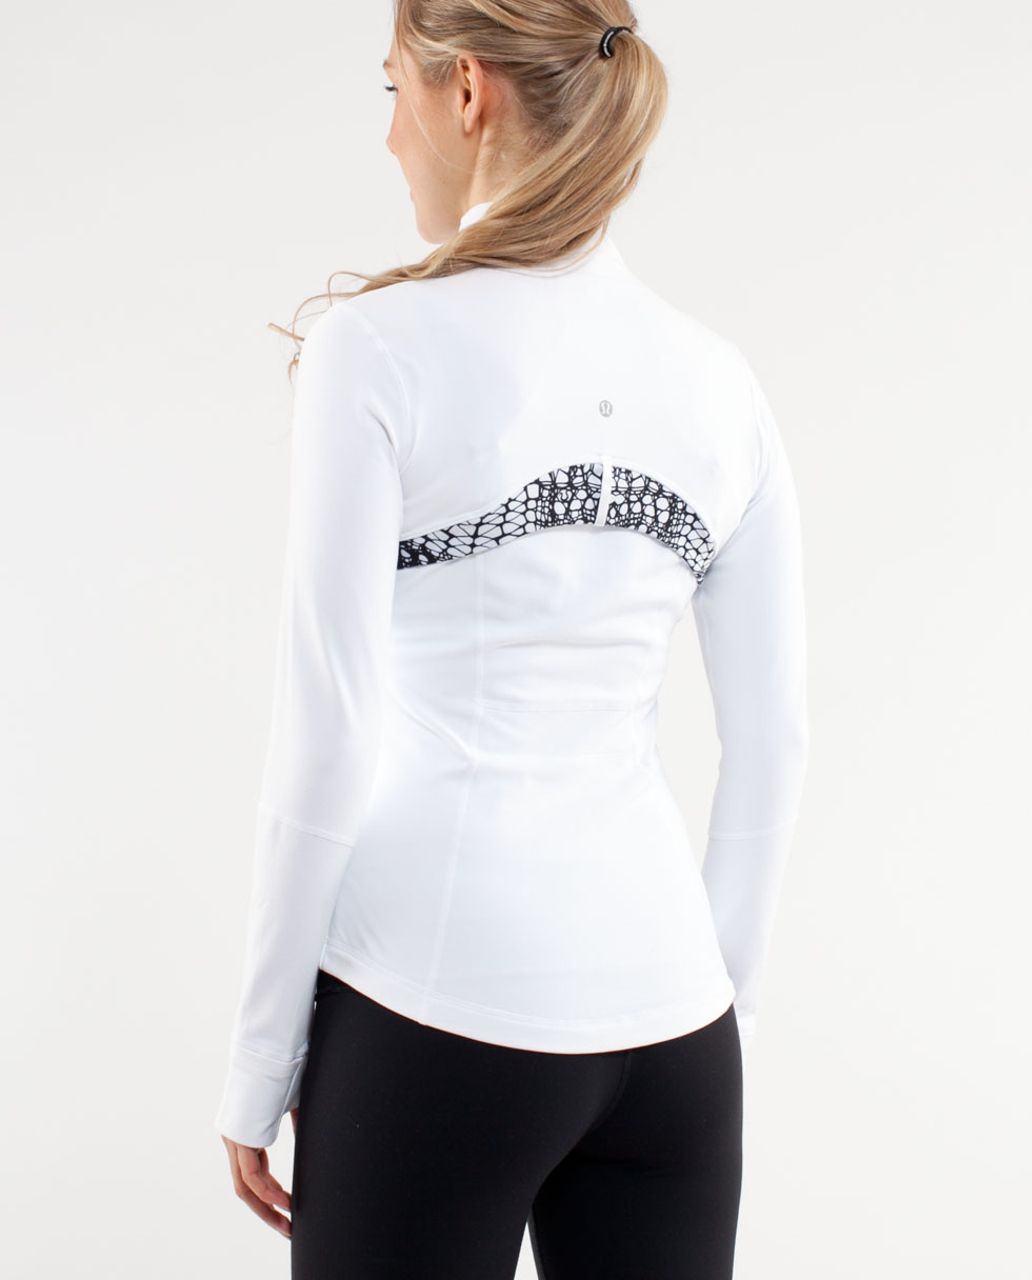 Lululemon Define Jacket *Brushed - White /  White Black Glacier Lace